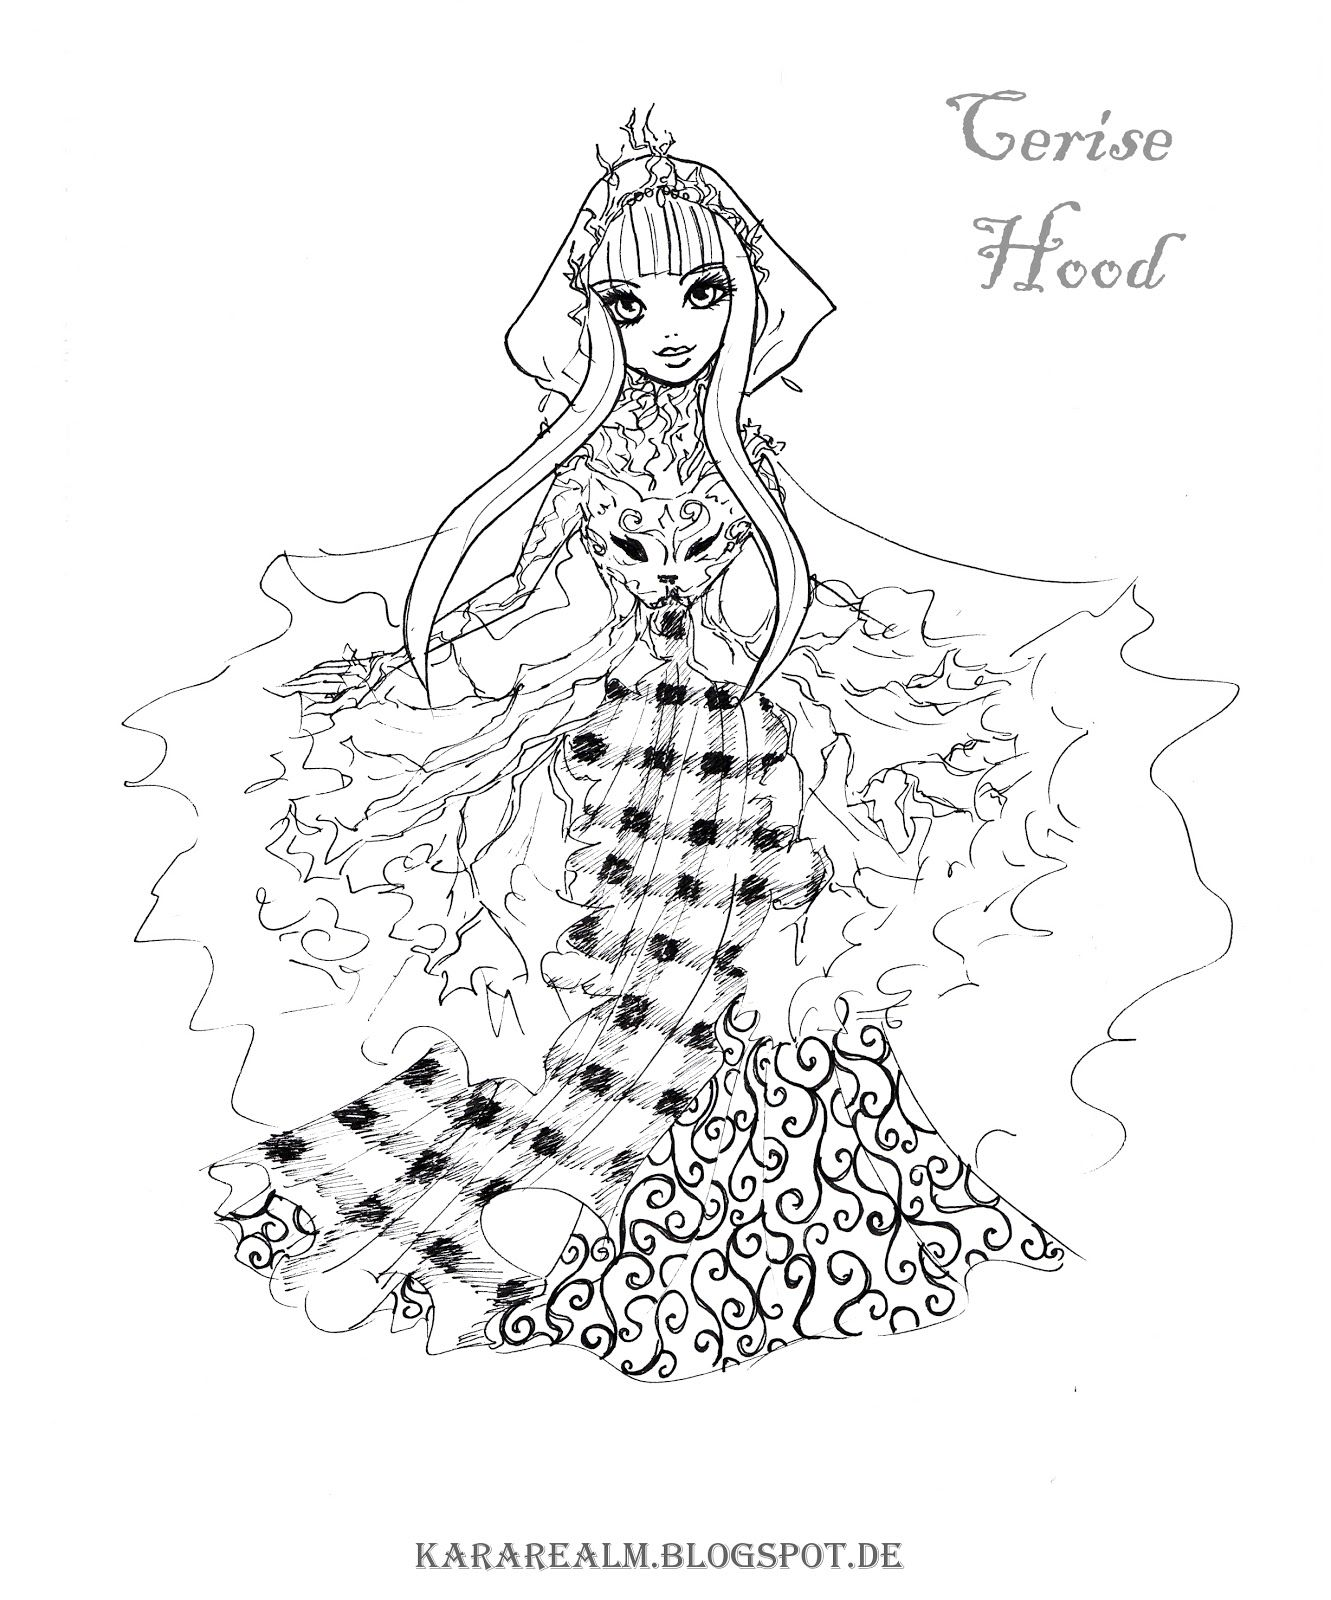 Kara realm ever after high coloring pages cerise hood - Cerise dessin ...